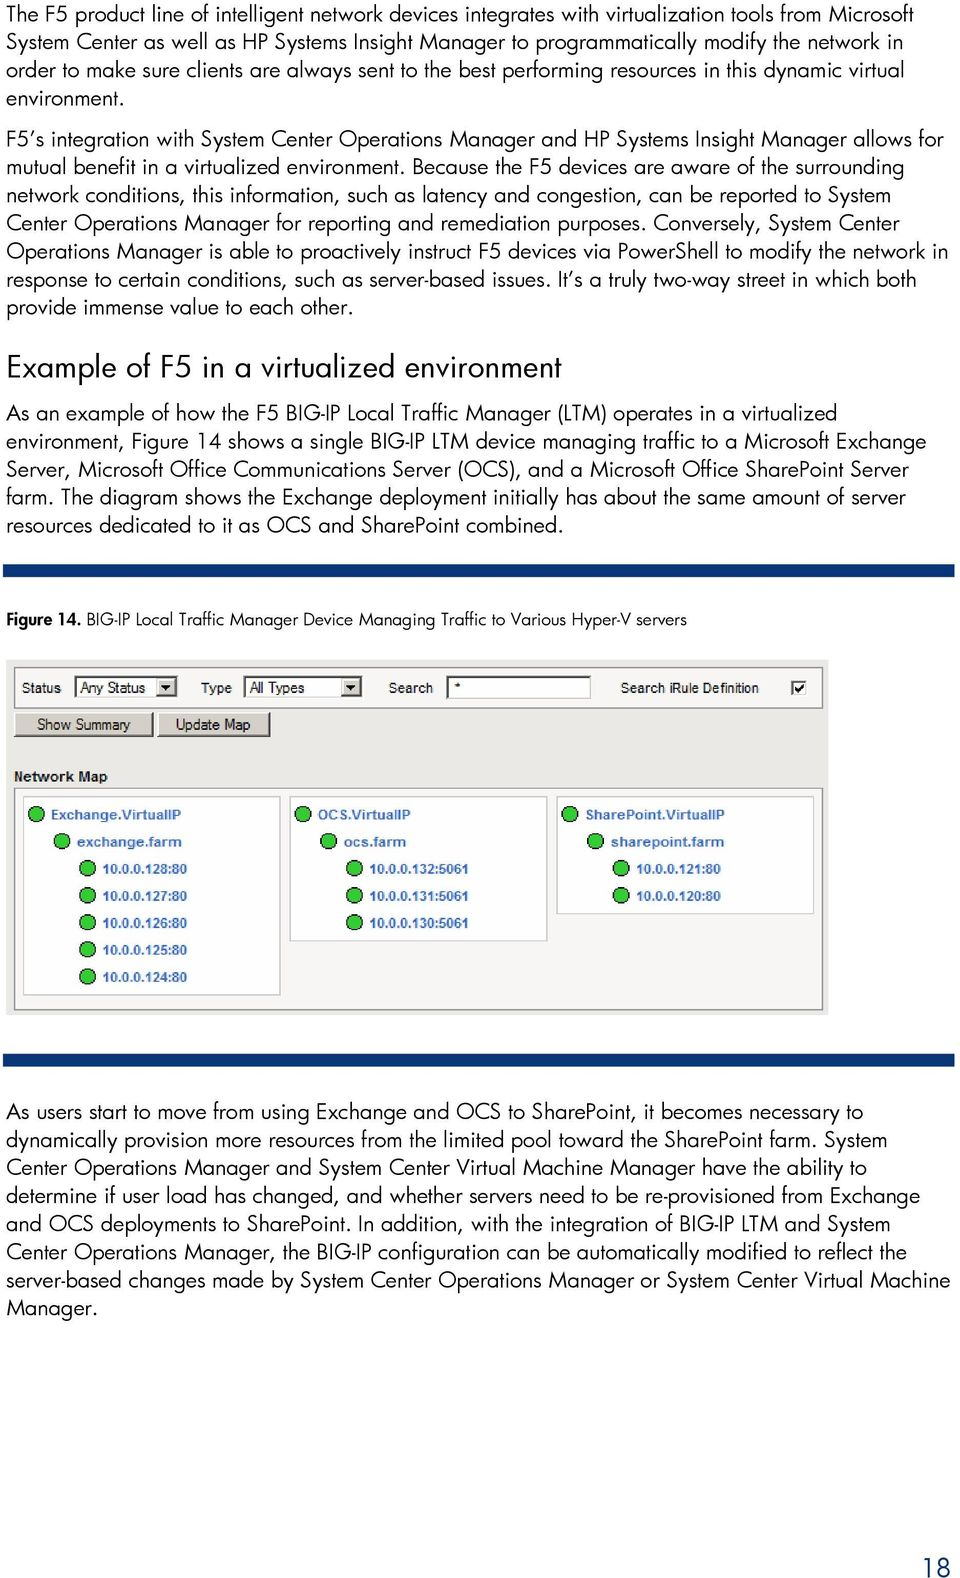 F5 s integration with System Center Operations Manager and HP Systems Insight Manager allows for mutual benefit in a virtualized environment.